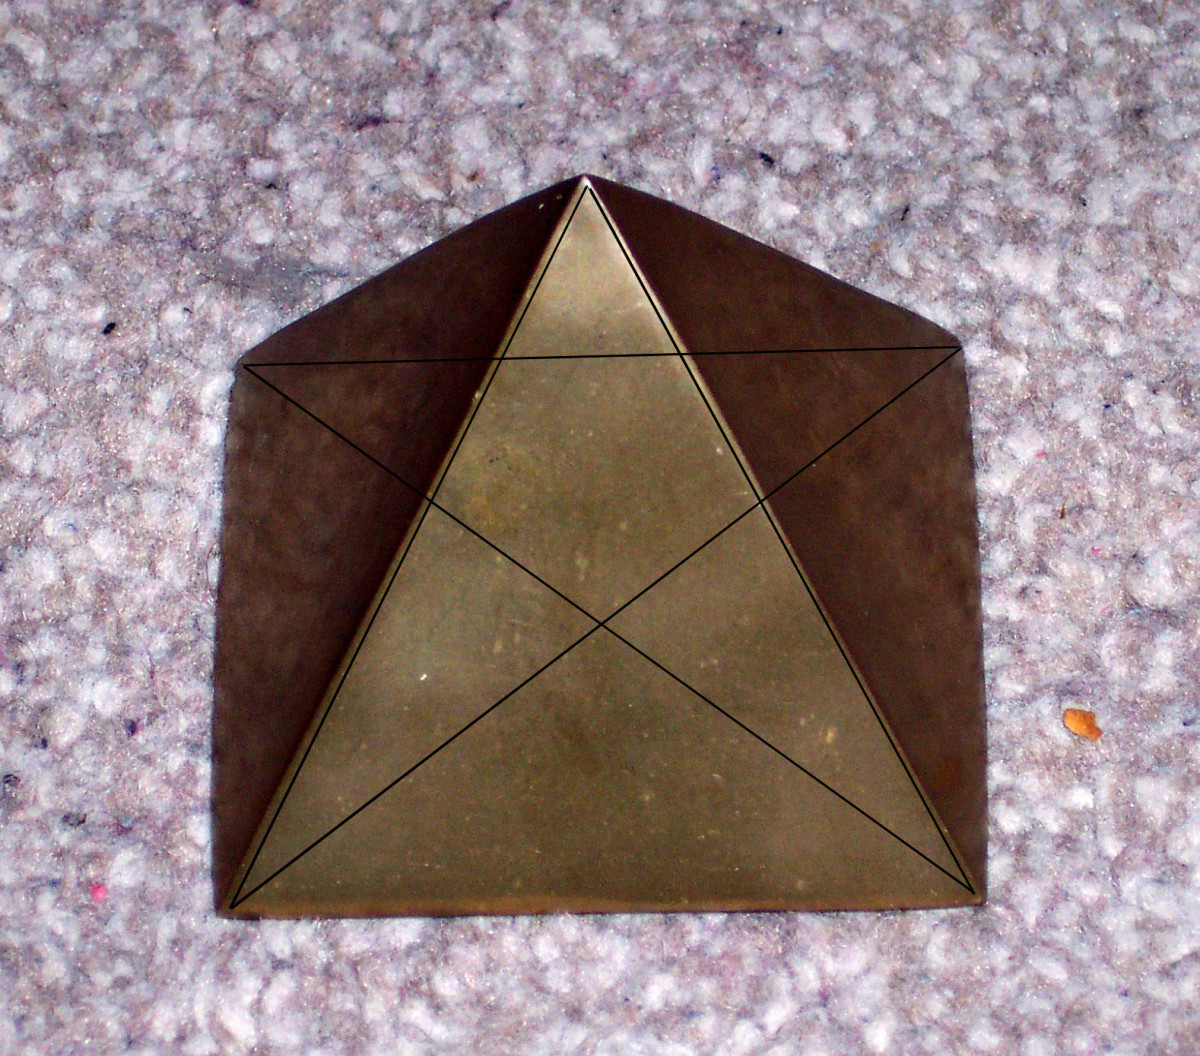 Model pyramid with imposed pentagram. The king and queen's chambers equate to the centre of the pentagram.